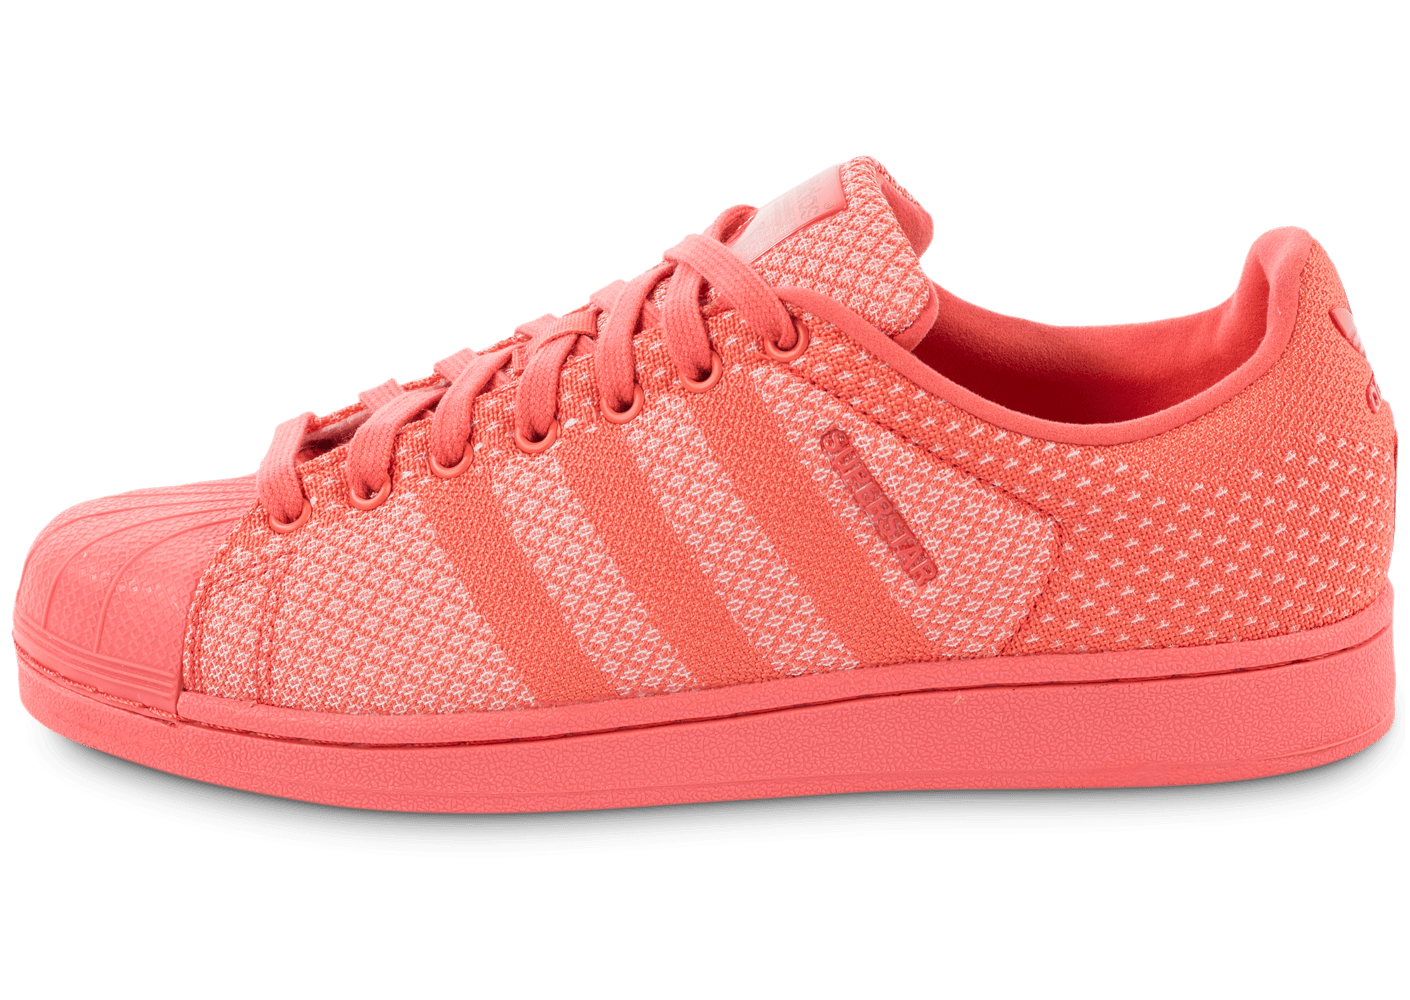 Weave Orange Superstar Chaussures Baskets Chausport Homme Adidas pxUqT